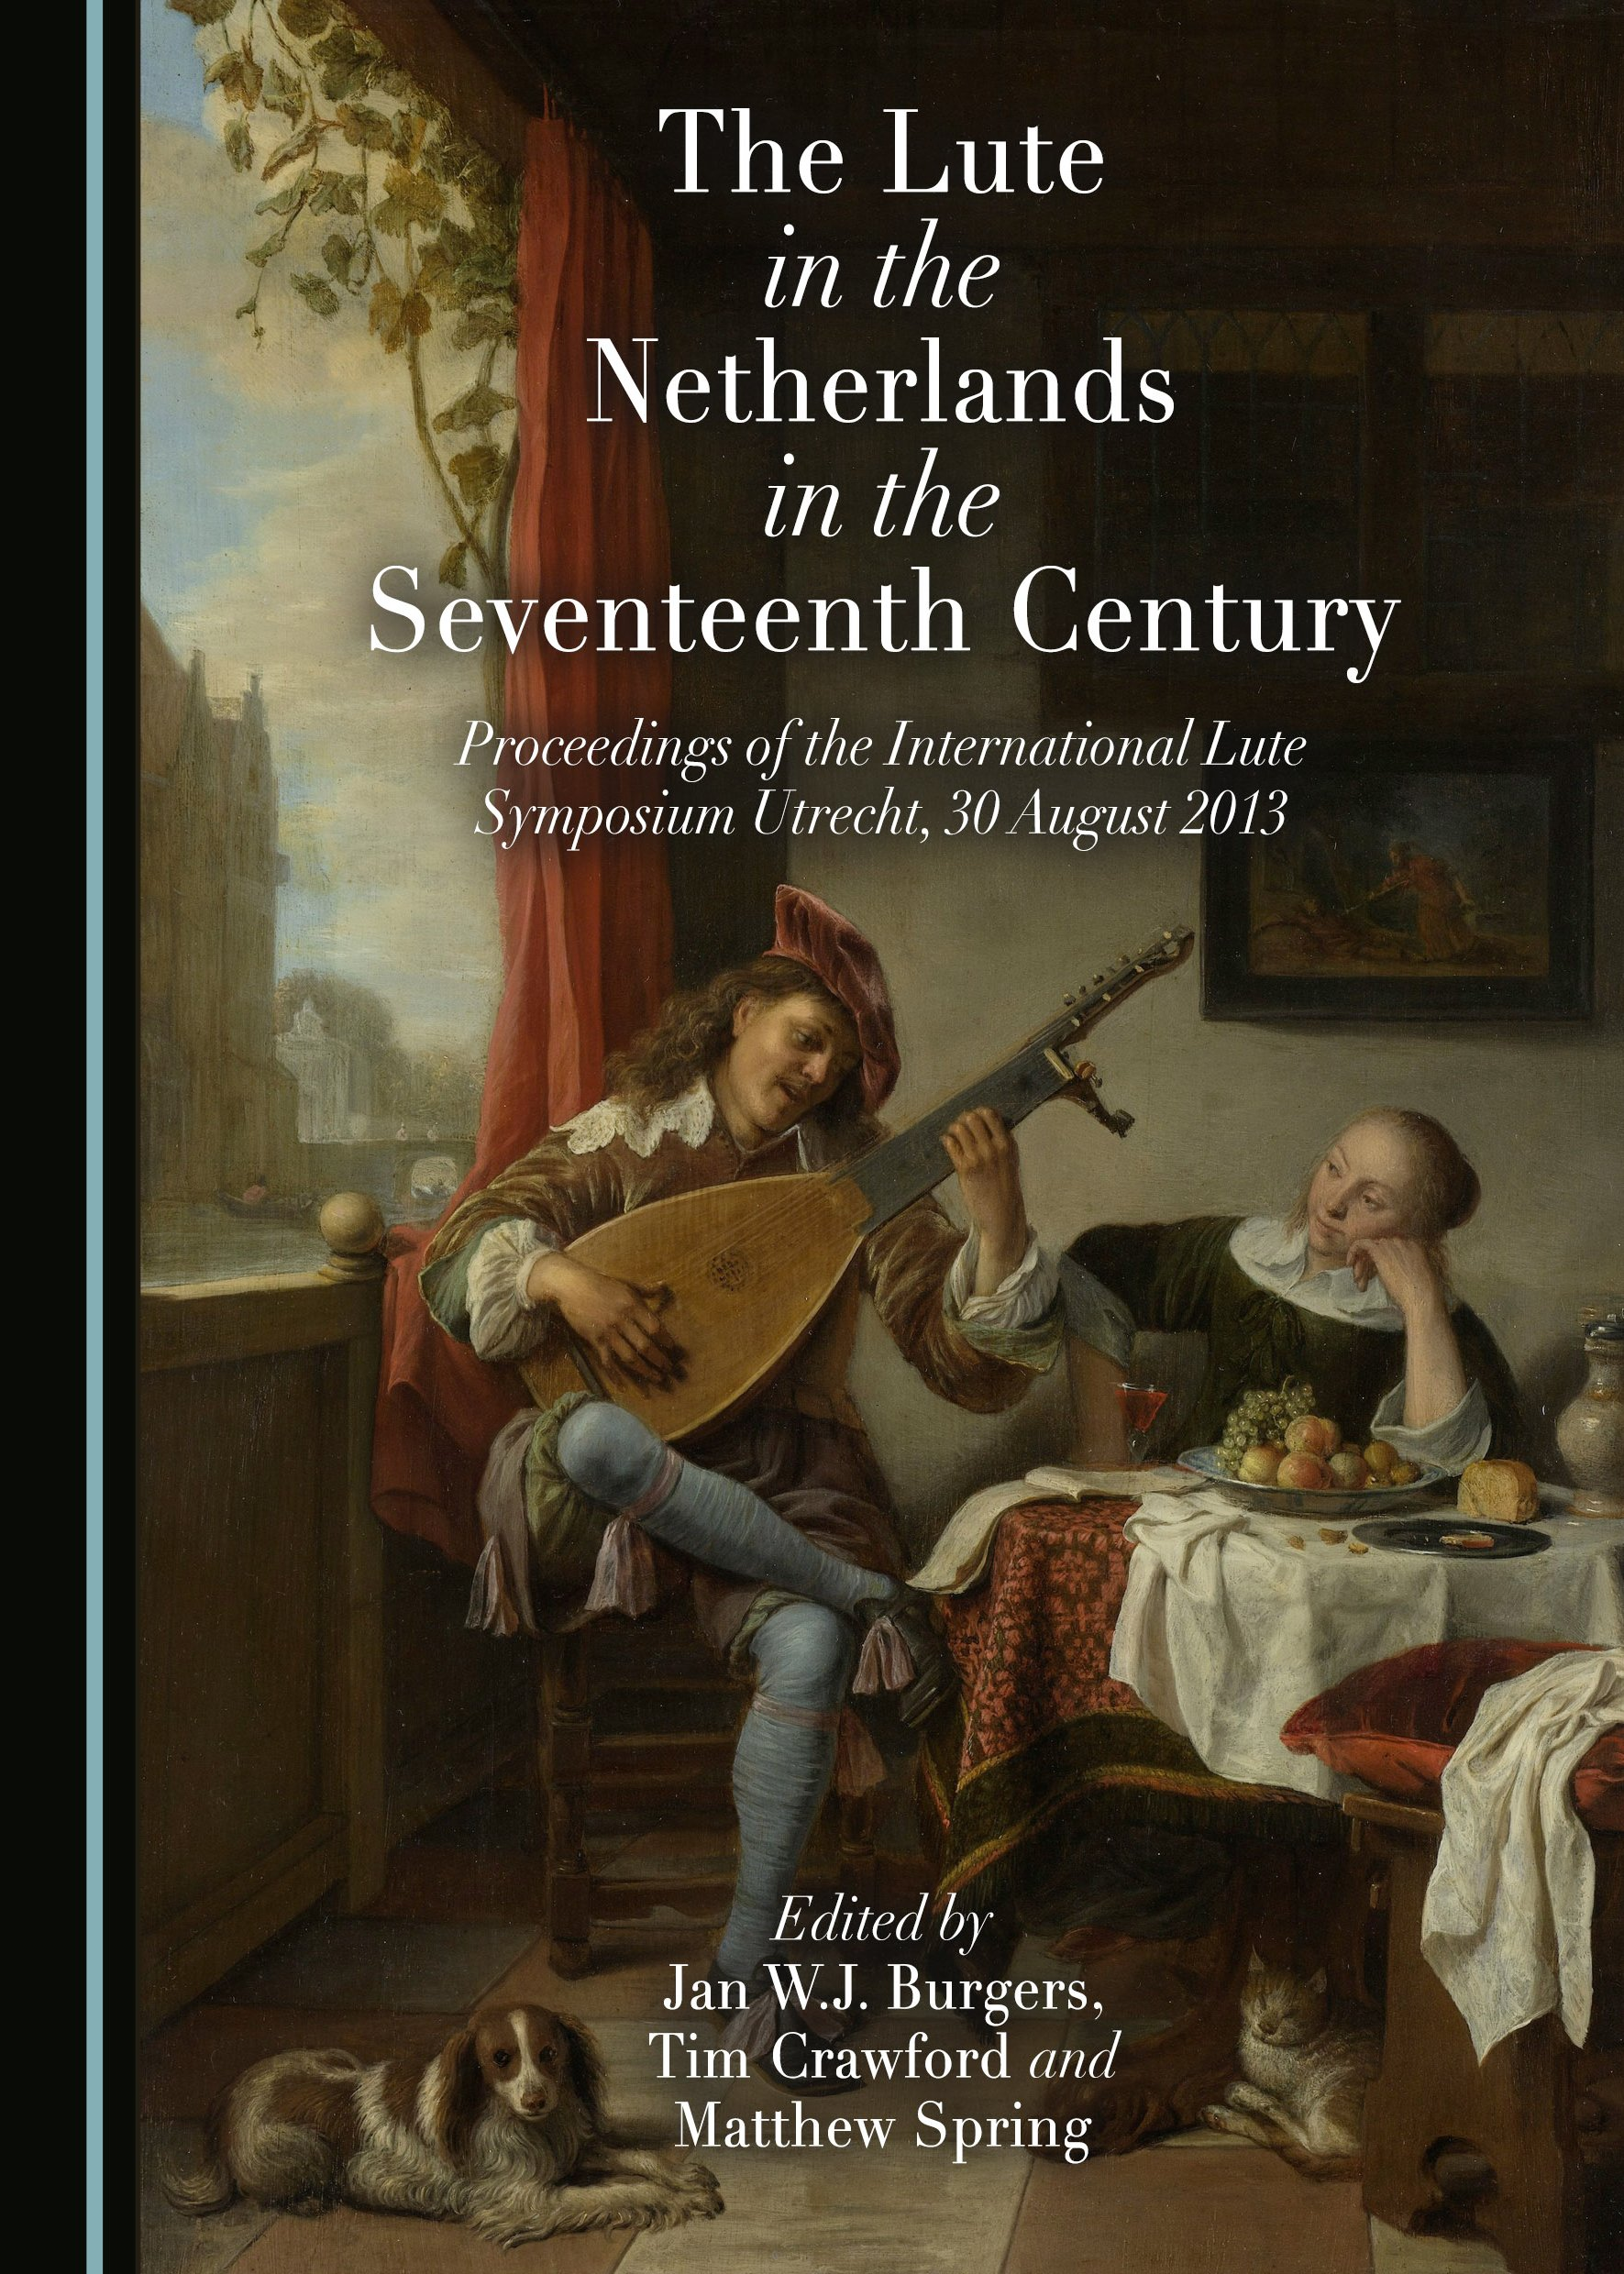 The Lute in the Netherlands in the Seventeenth Century: Proceedings of the International Lute Symposium Utrecht, 30 August 2013